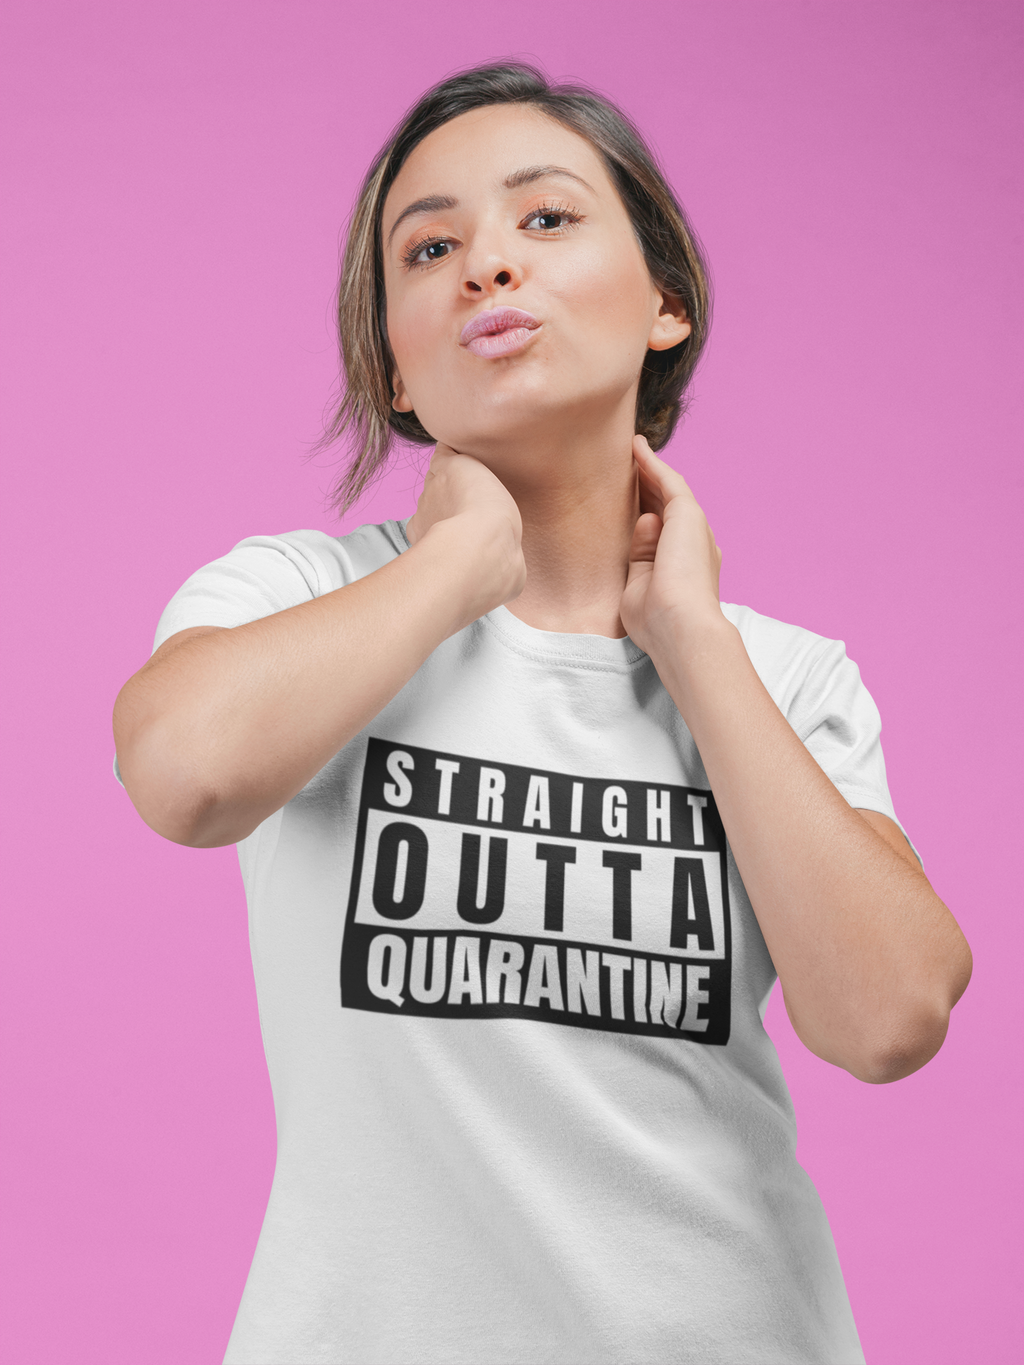 Straight Outta Quarantine Short-Sleeve Unisex T-Shirt